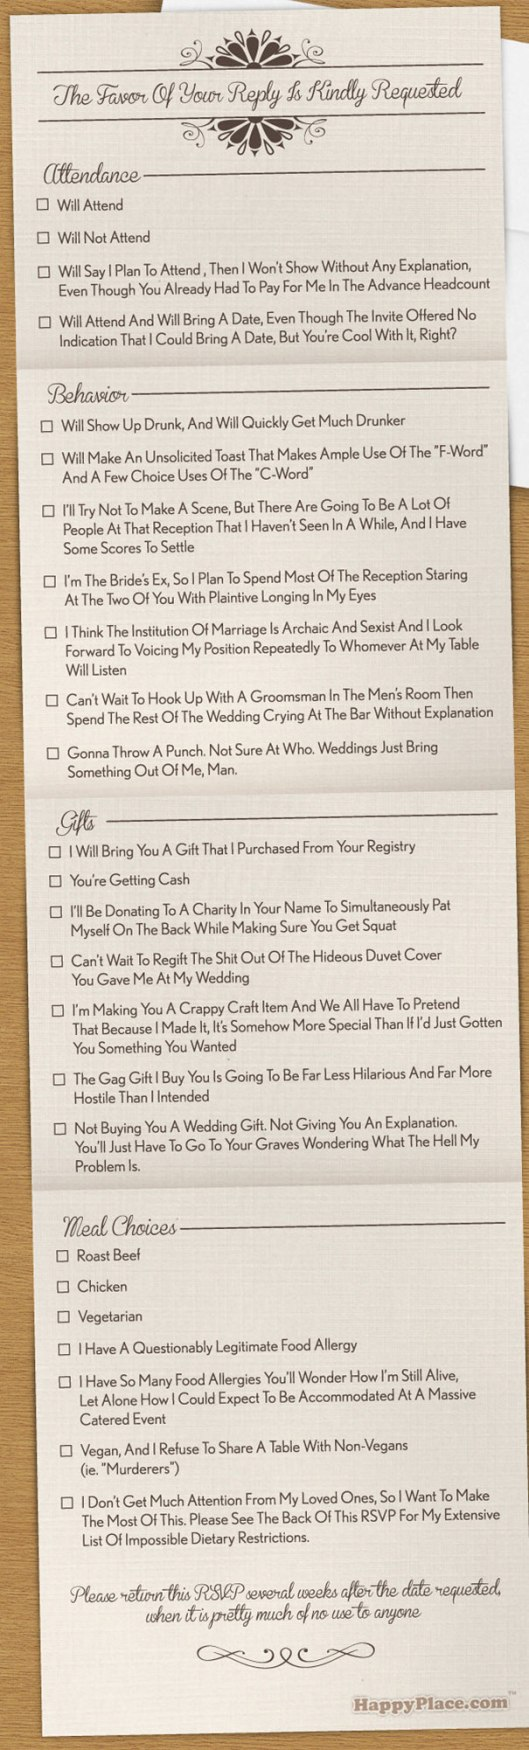 funny-wedding-invitations-rsvp-6.jpg